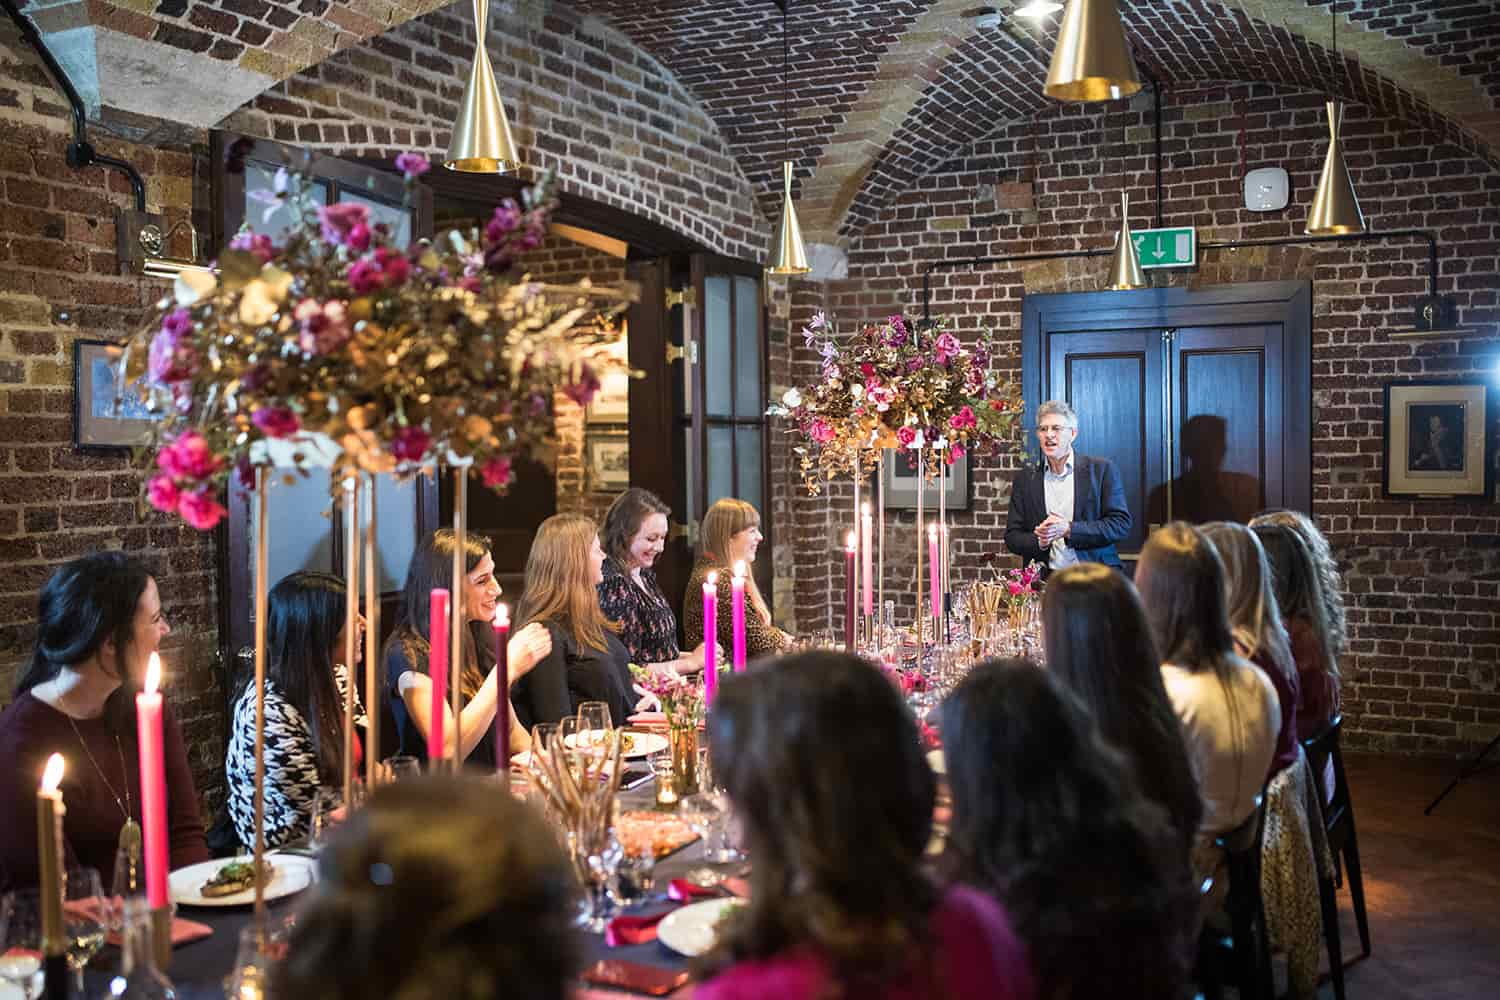 The Galentines event was held in the Wine Bar at 116 this year